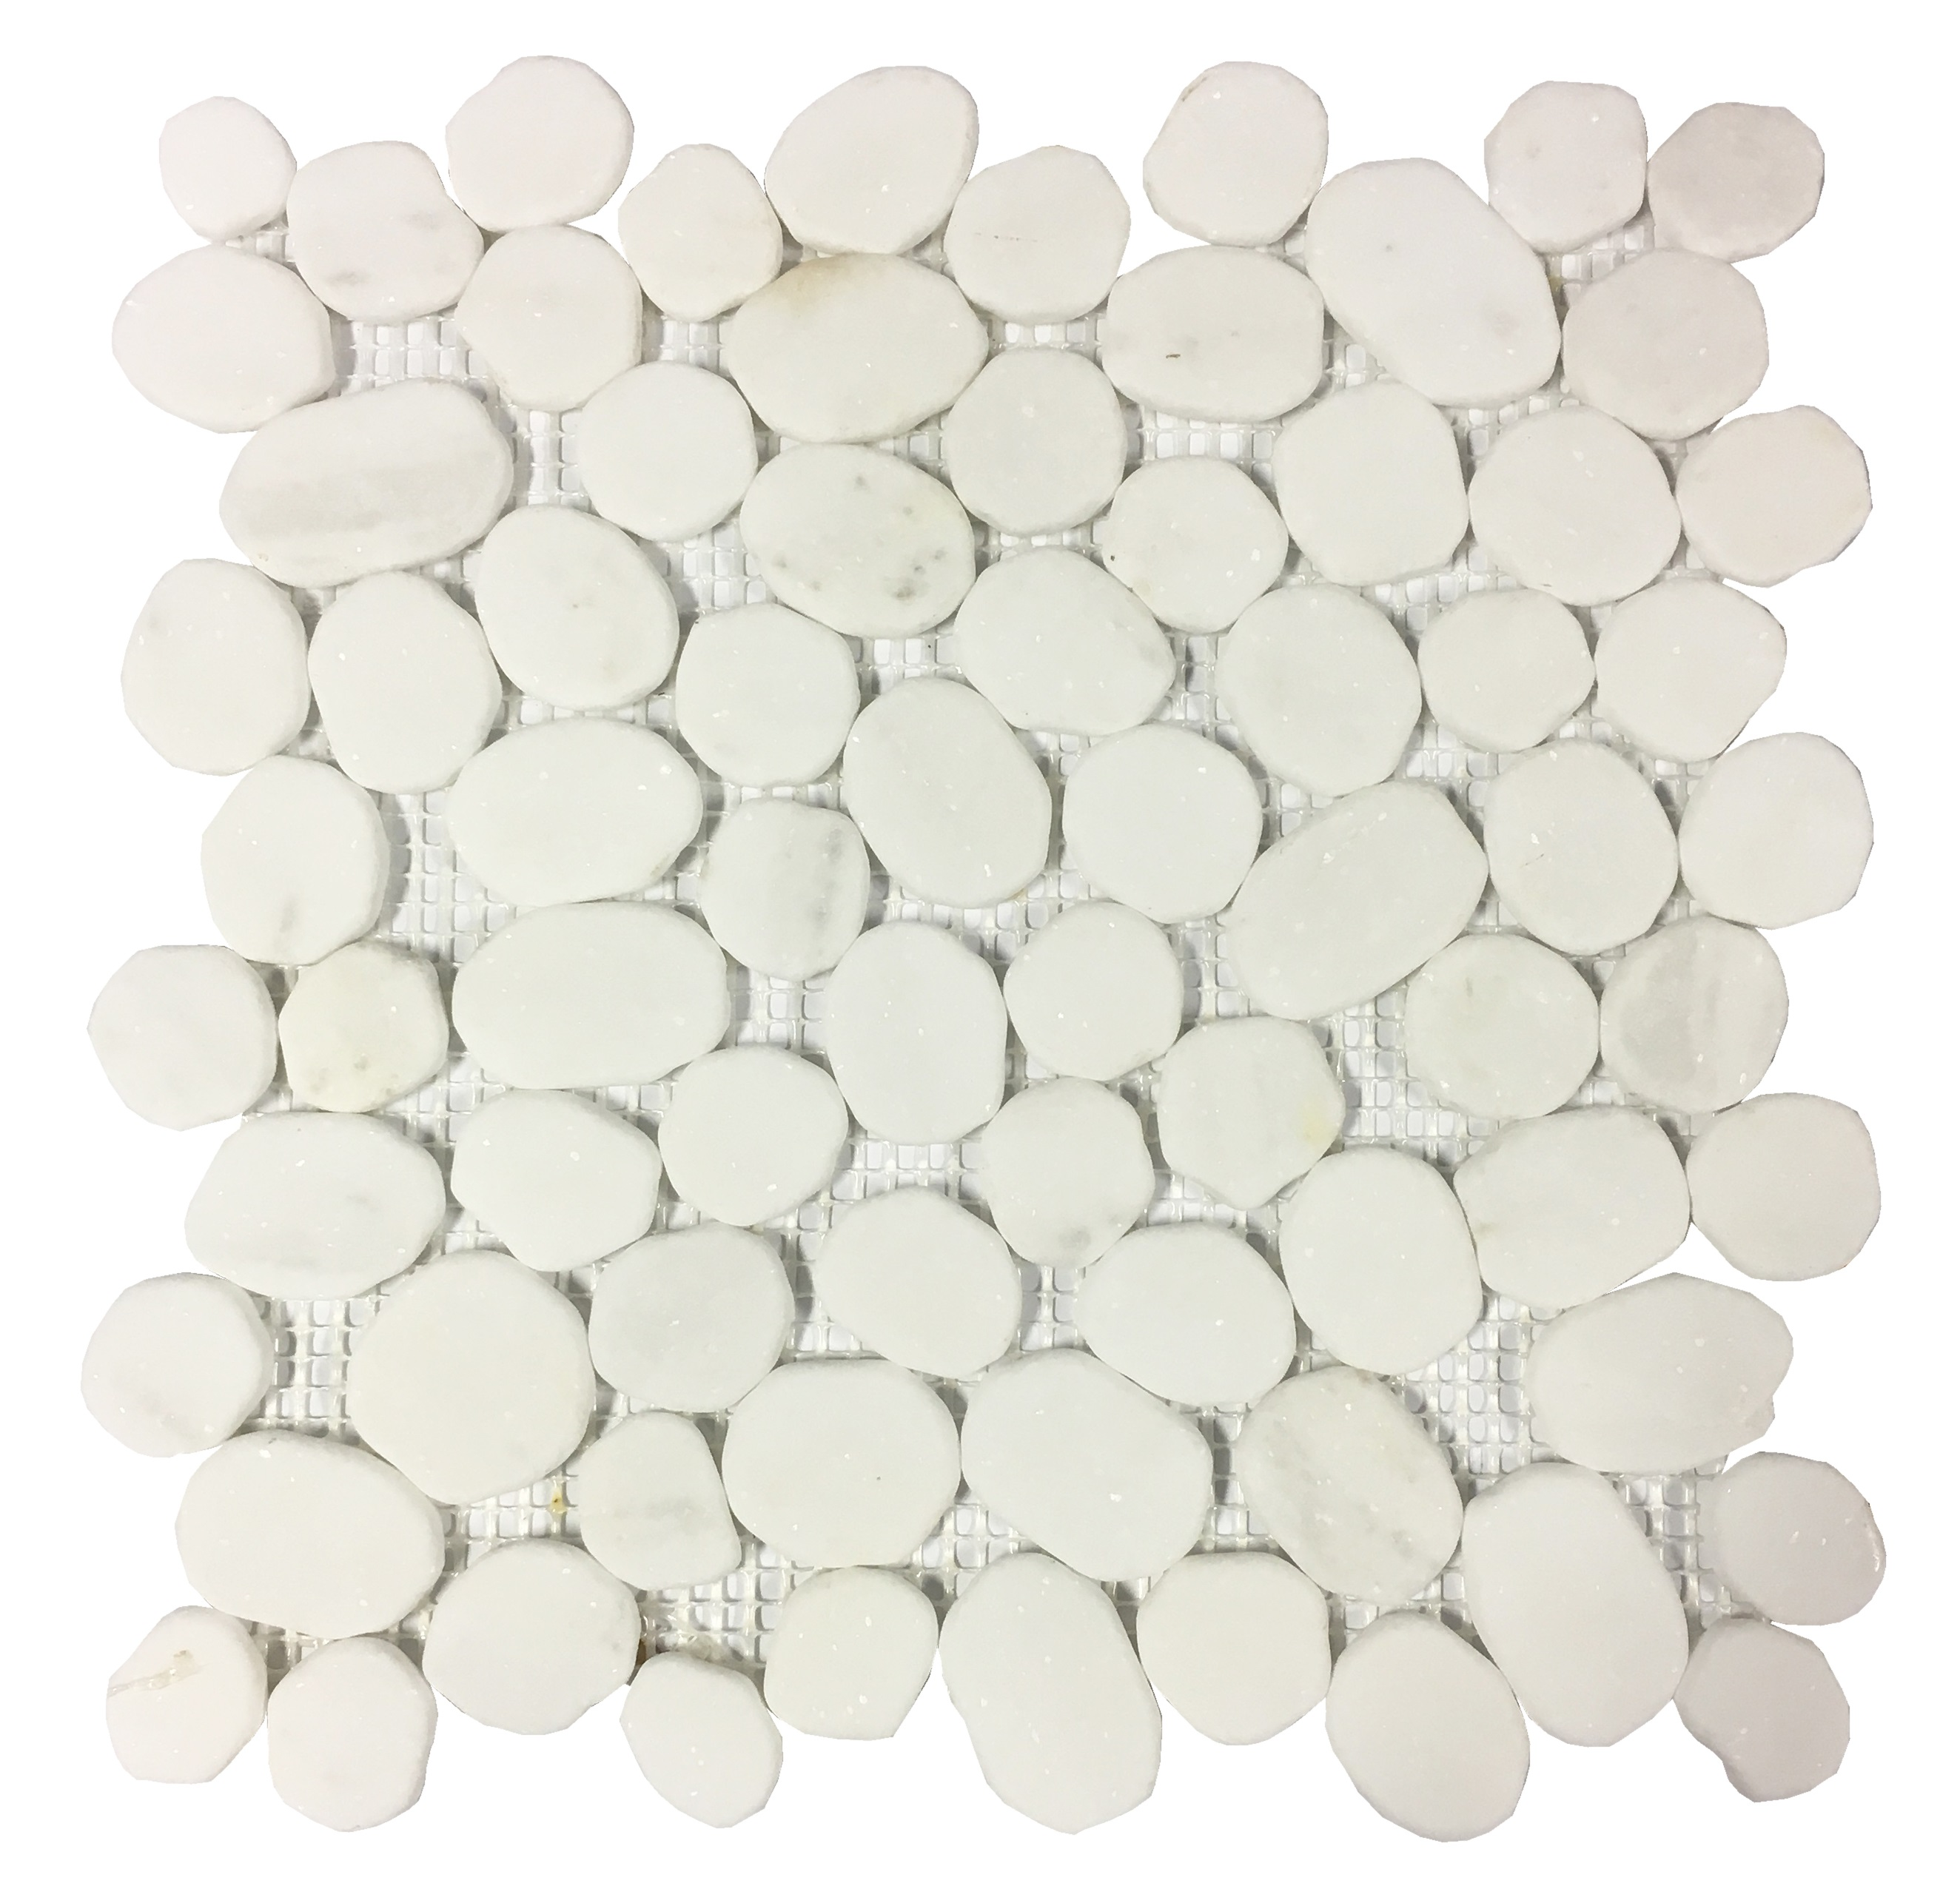 IMSO RIVER WHITE MARBLE PEBBLES